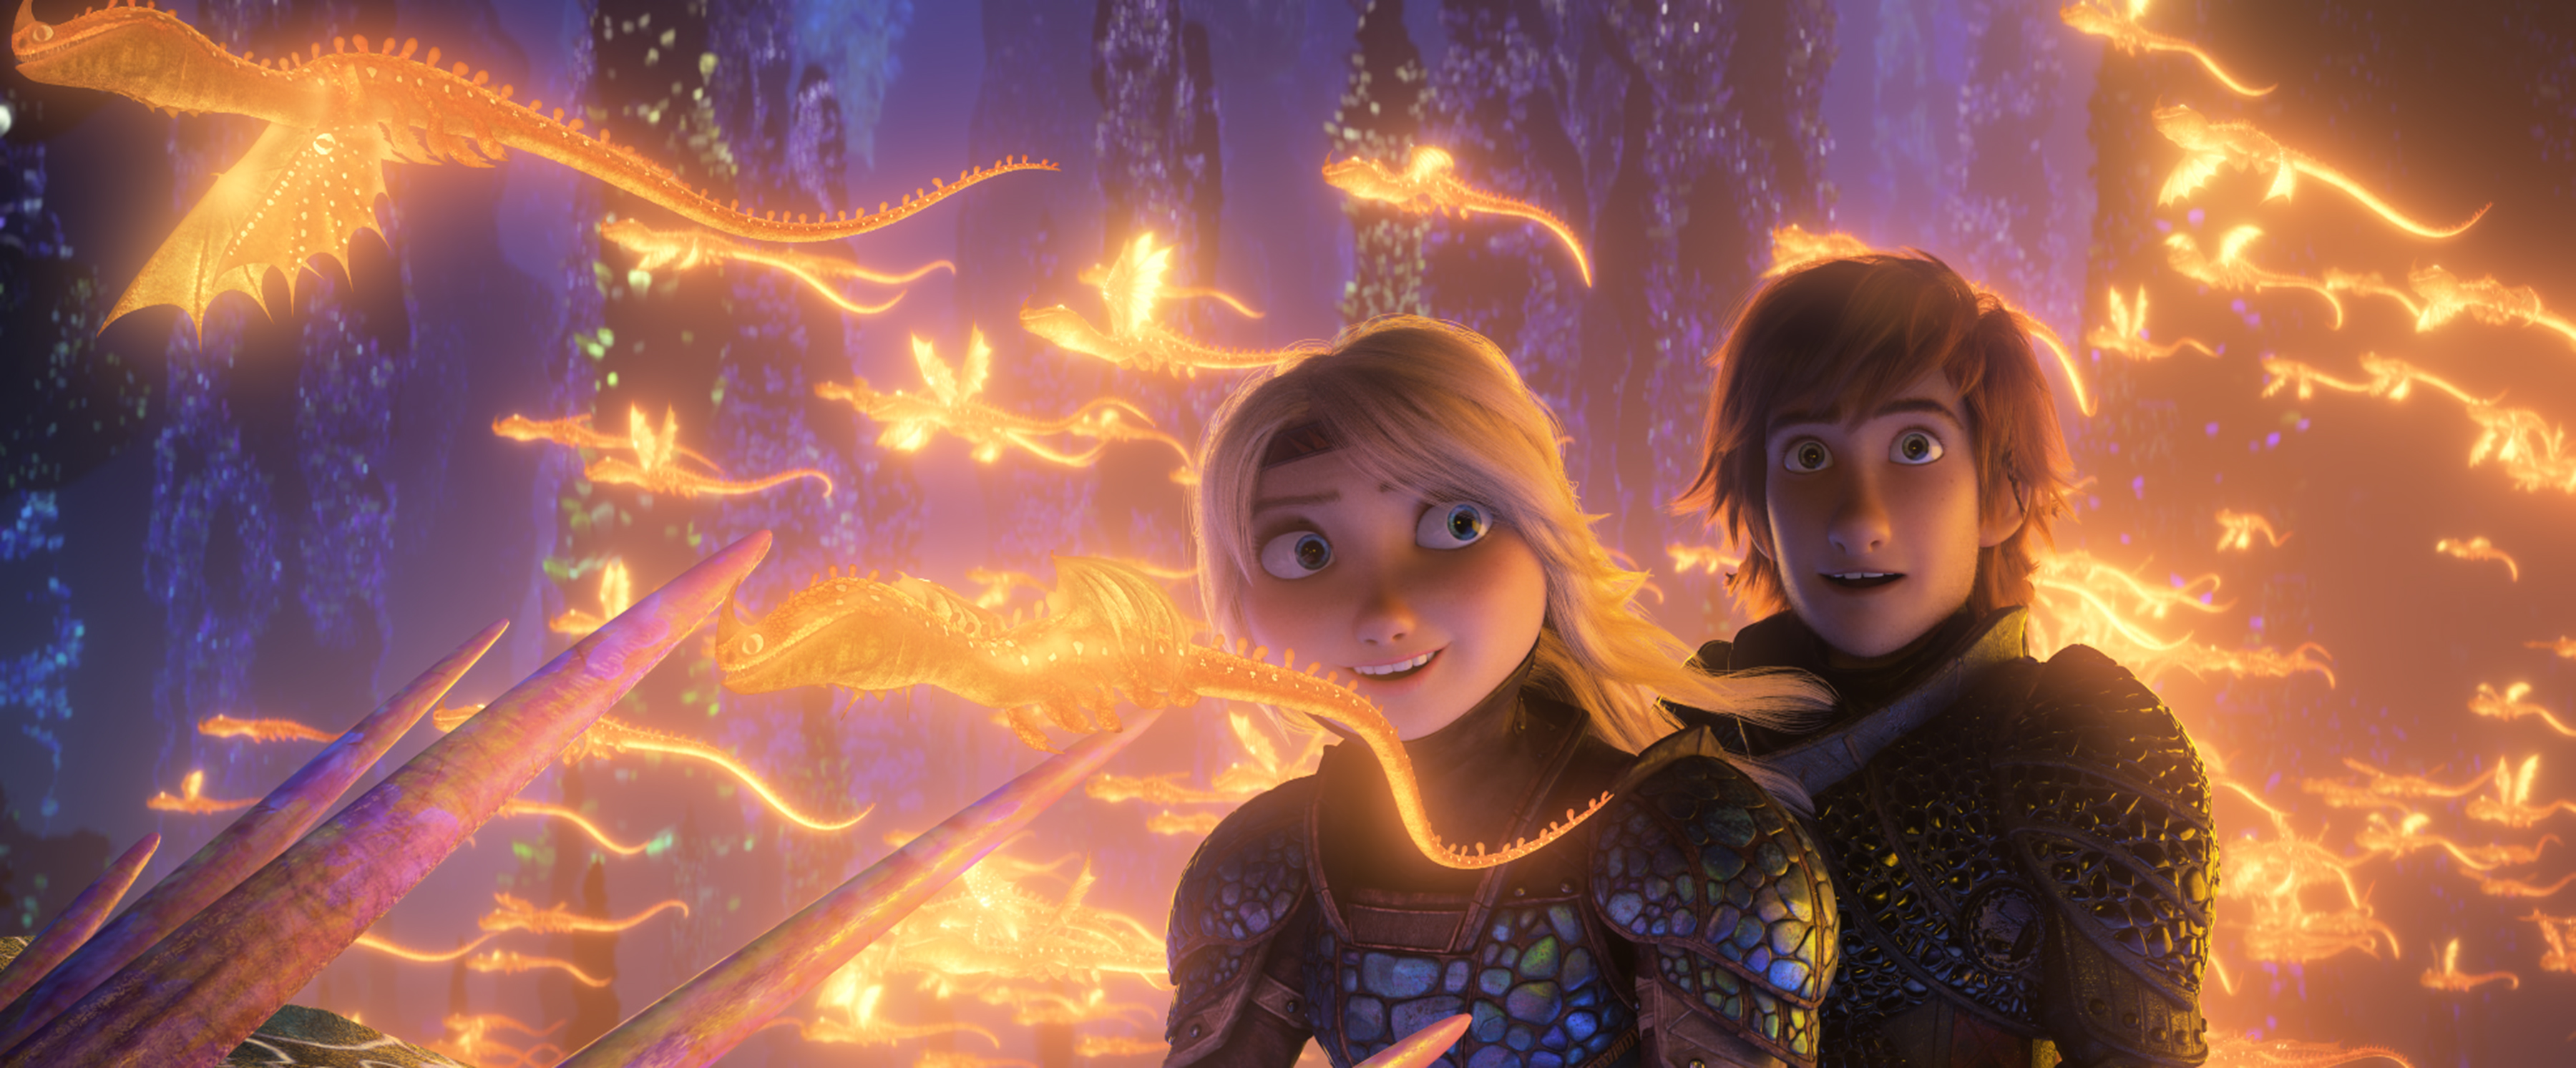 Astrid (America Ferrera) and Hiccup (Jay Baruchel) in DreamWorks Animation's How To Train Your Dragon: The Hidden World, directed by Dean DeBlois.